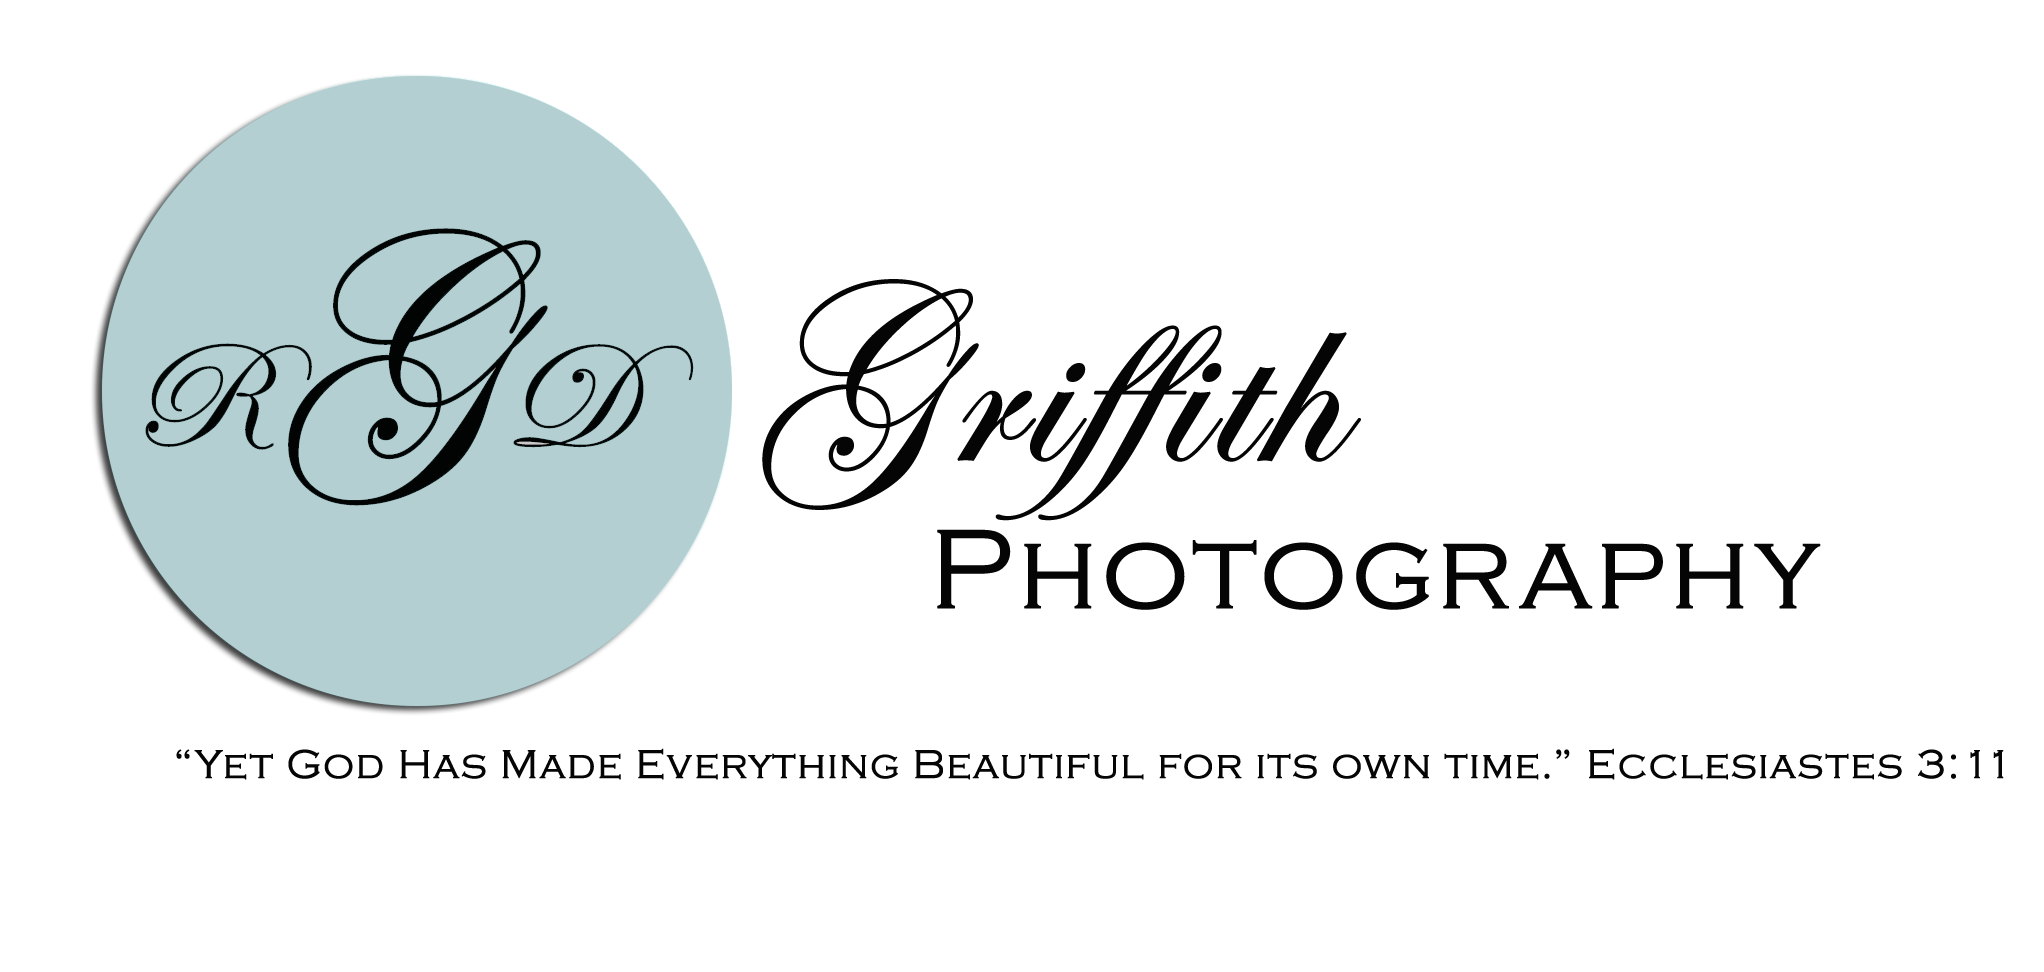 Griffith Photography, LLC